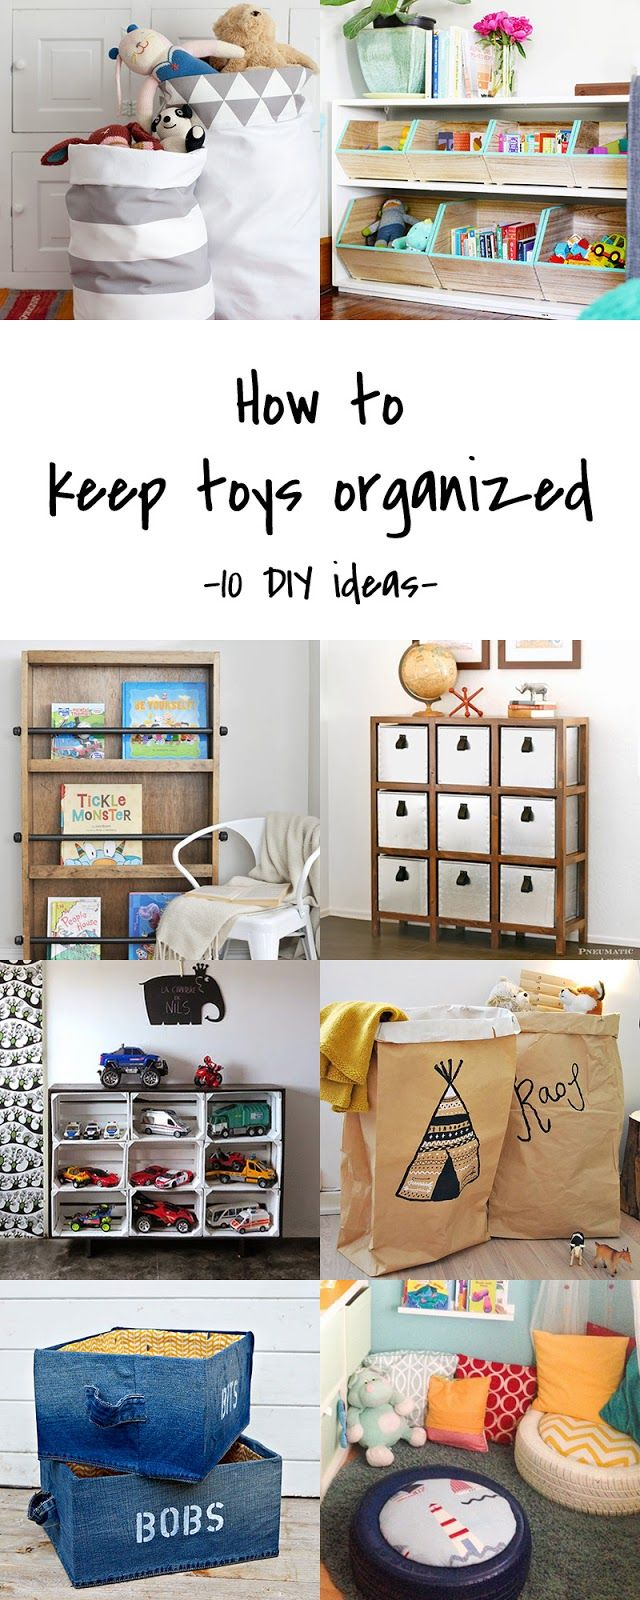 Coole Sachen Für Kinder Diy To Try Toy Storage Coole Sachen Pinterest Kinderzimmer